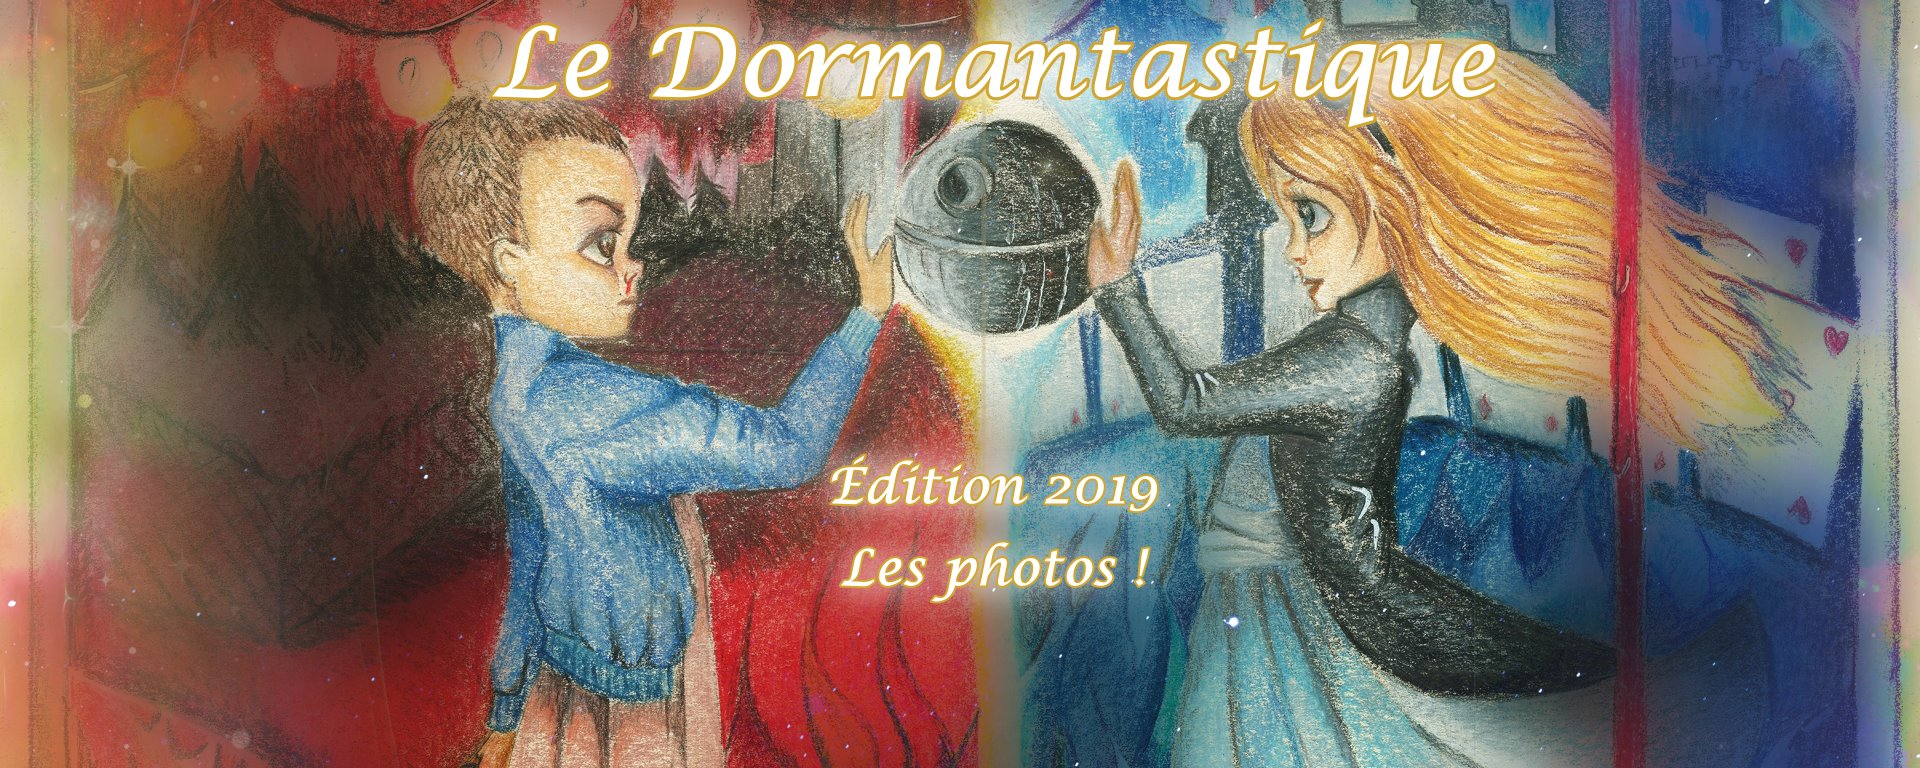 Le Dormantastique édition 2019 : L'album photos !